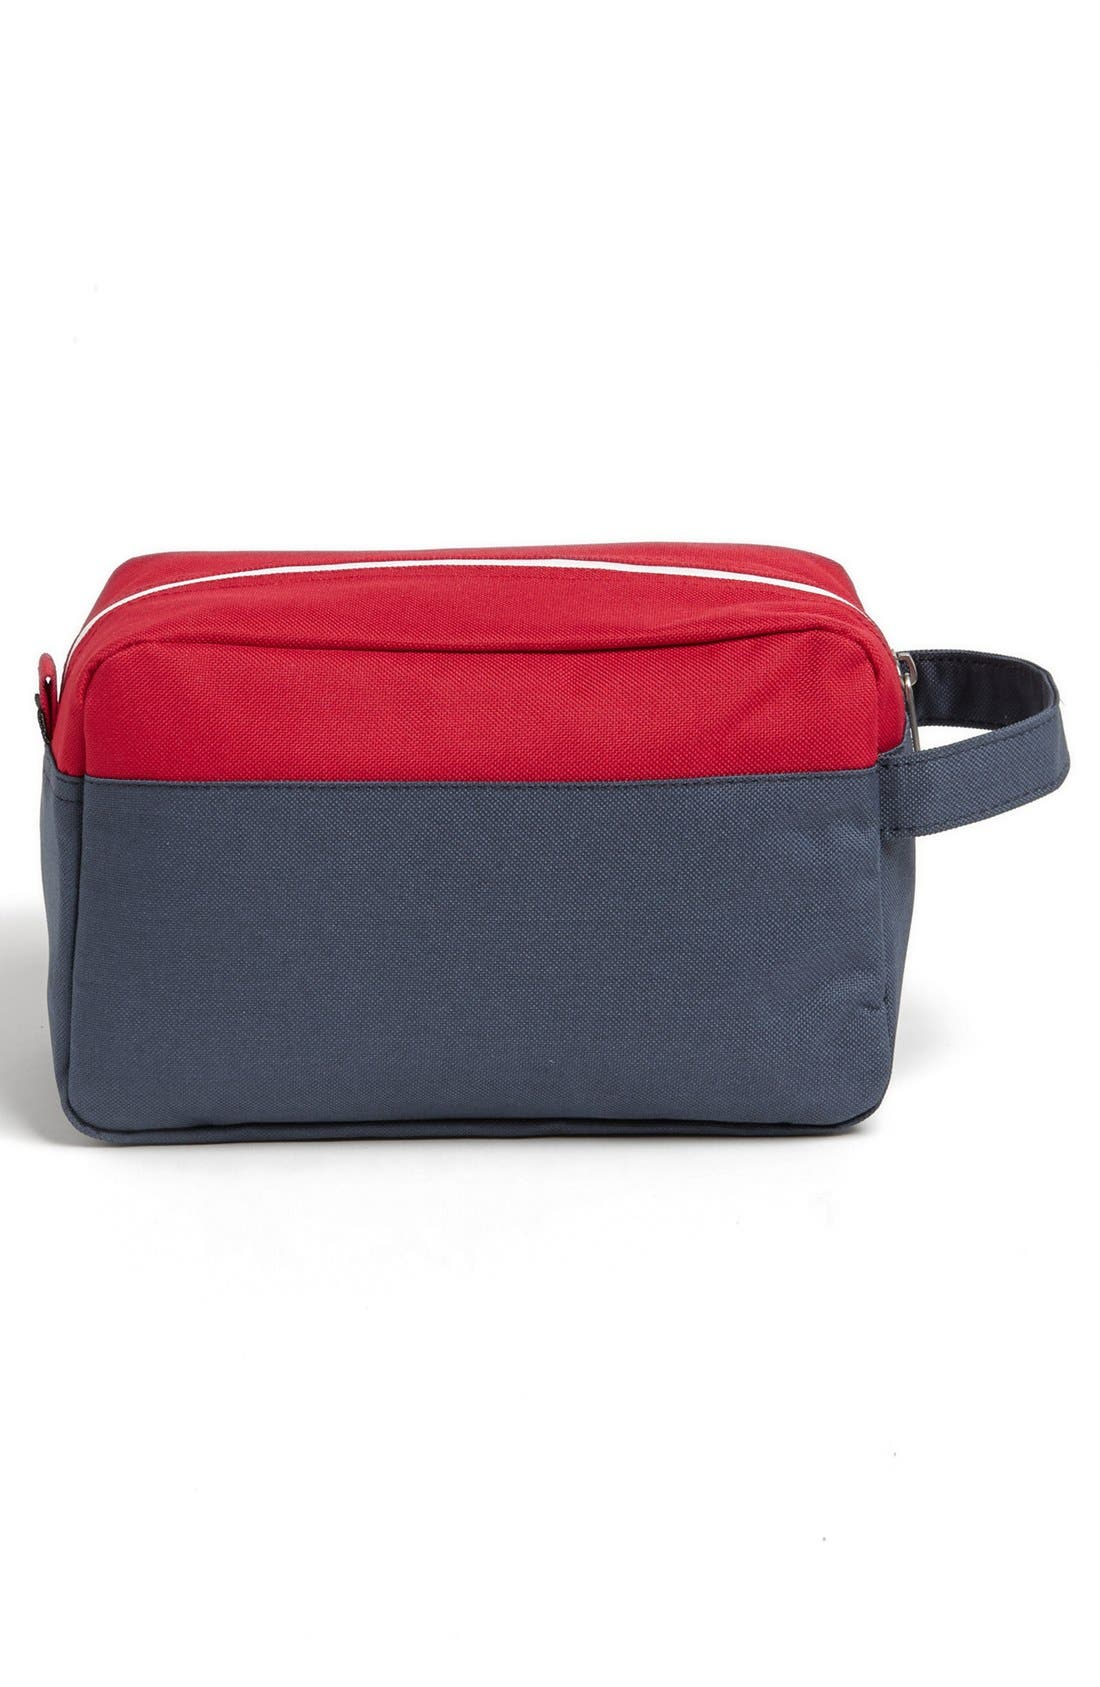 'Chapter' Toiletry Case,                             Alternate thumbnail 2, color,                             NAVY/ RED